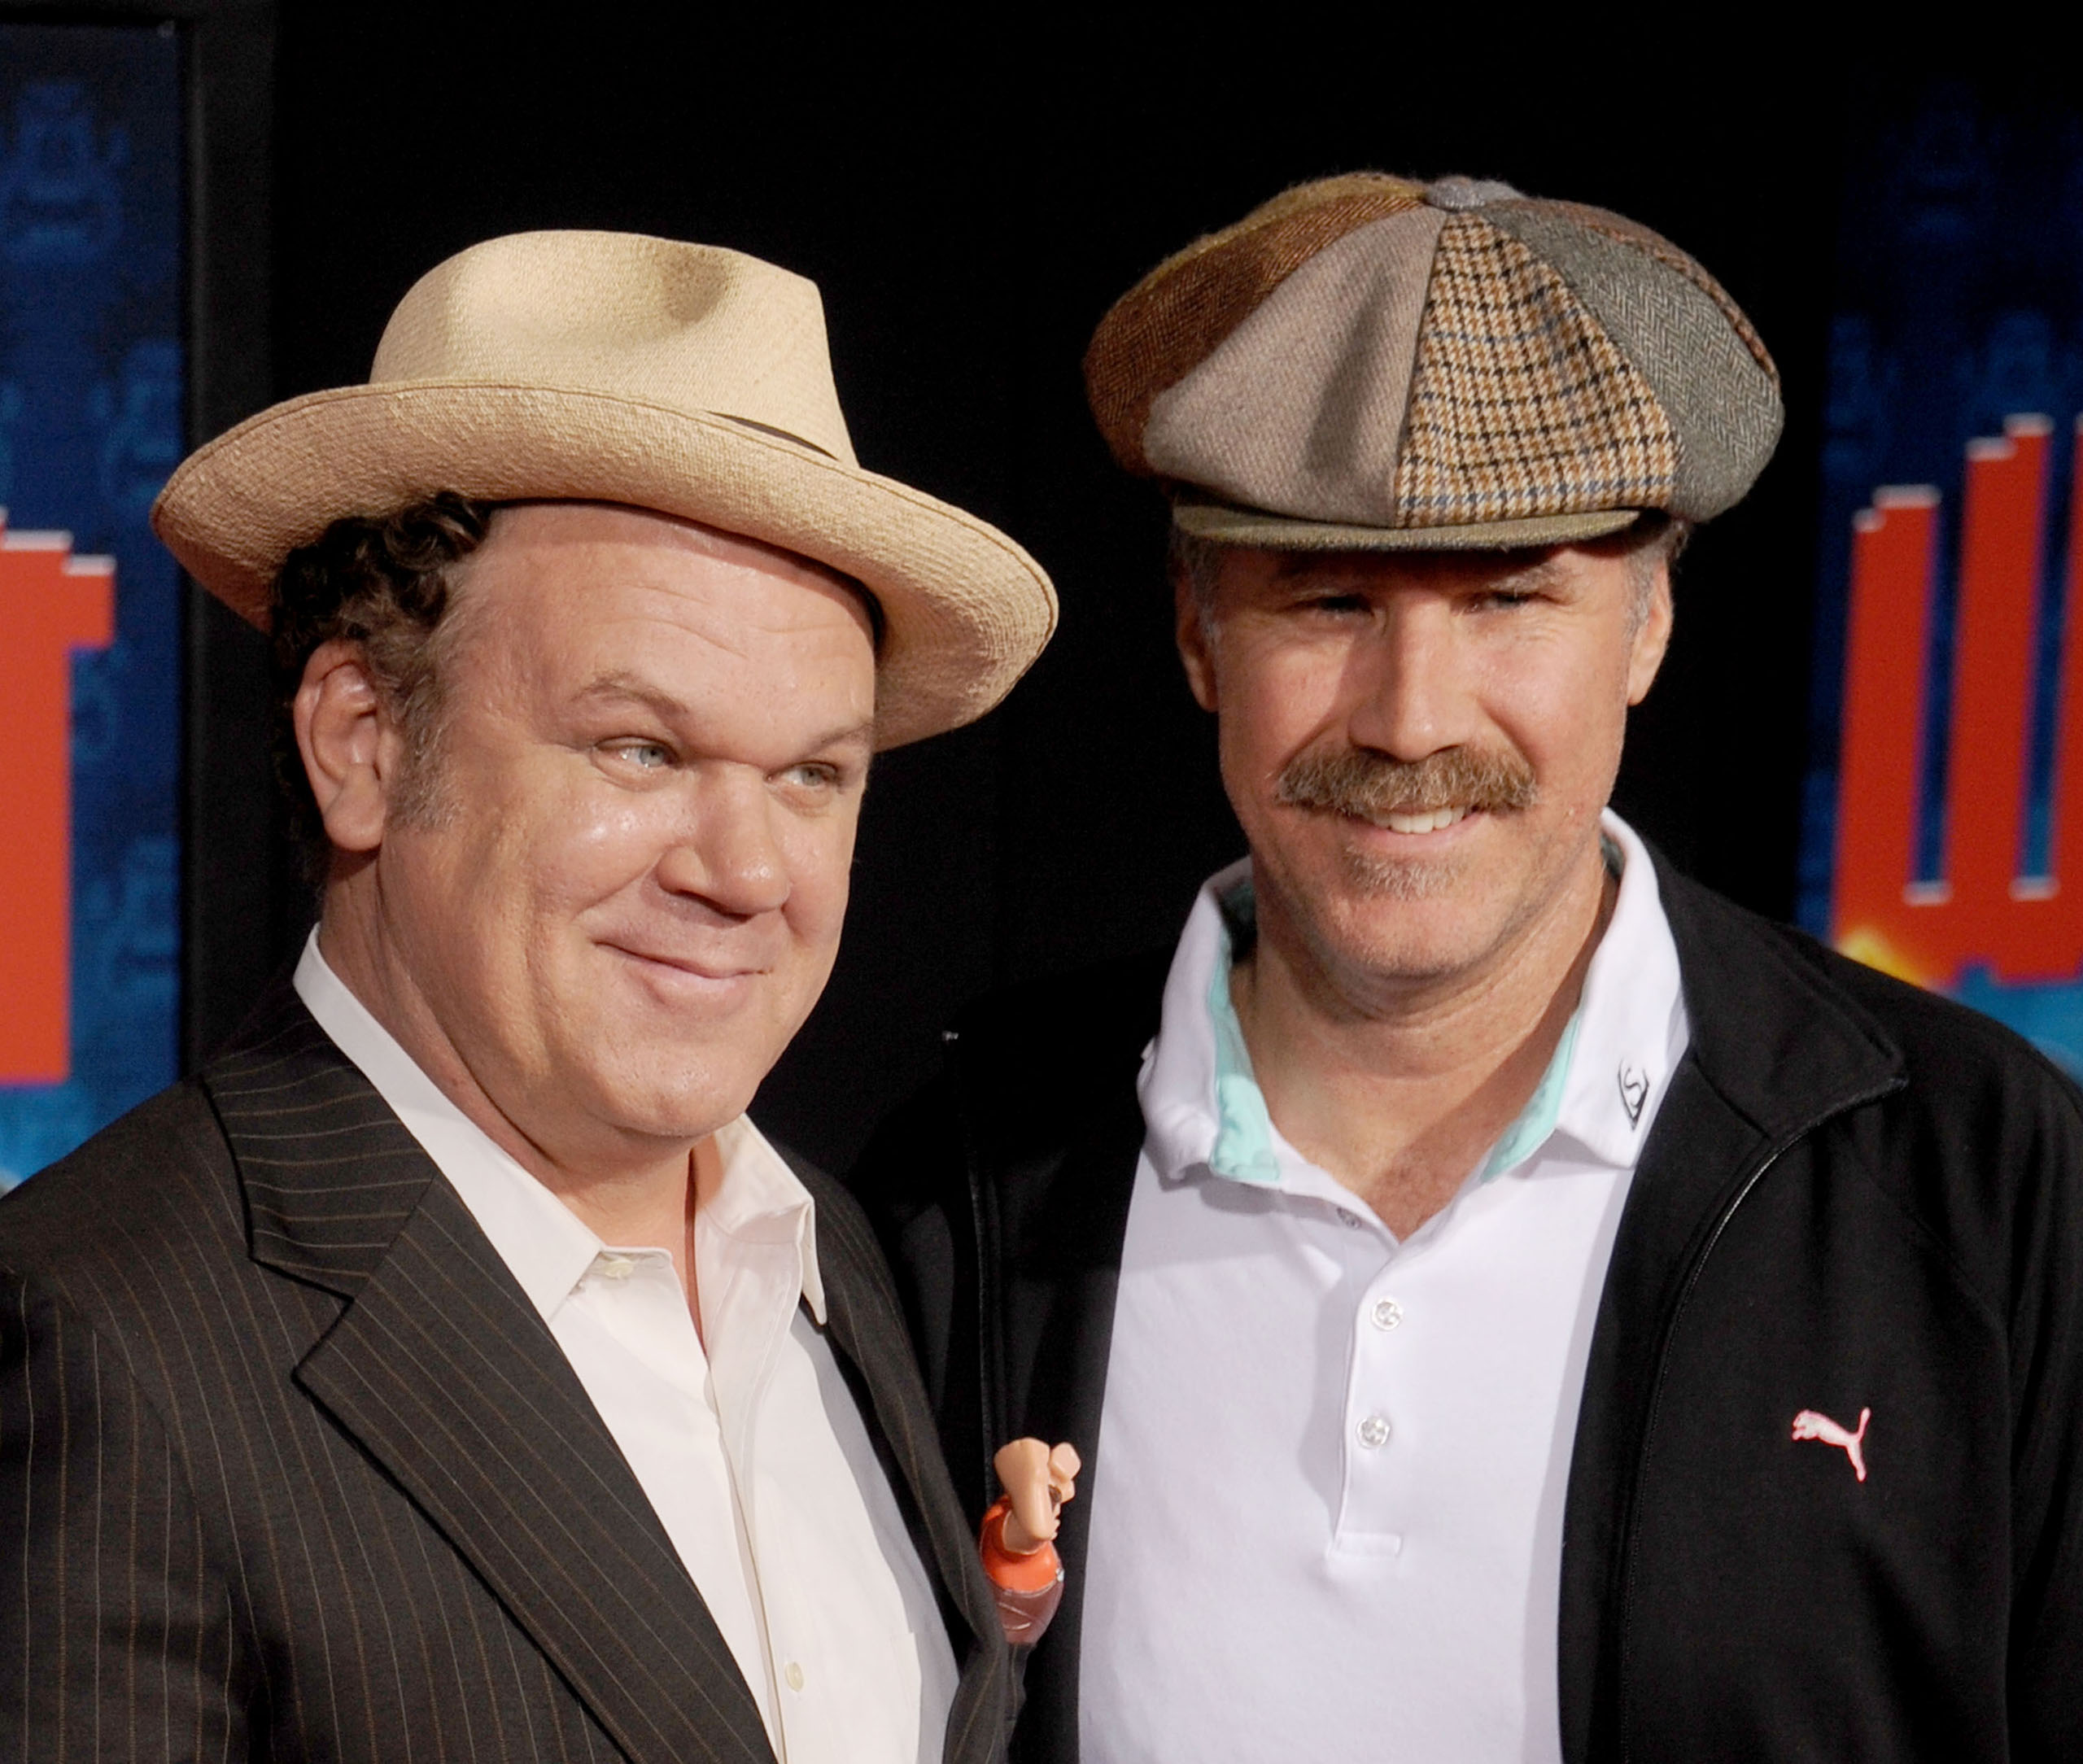 John C. Reilly and Will Ferrell arrive at the Los Angeles premiere of  Wreck-It Ralph  at the El Capitan Theatre in Hollywood, Calif., on Oct. 29, 2012.